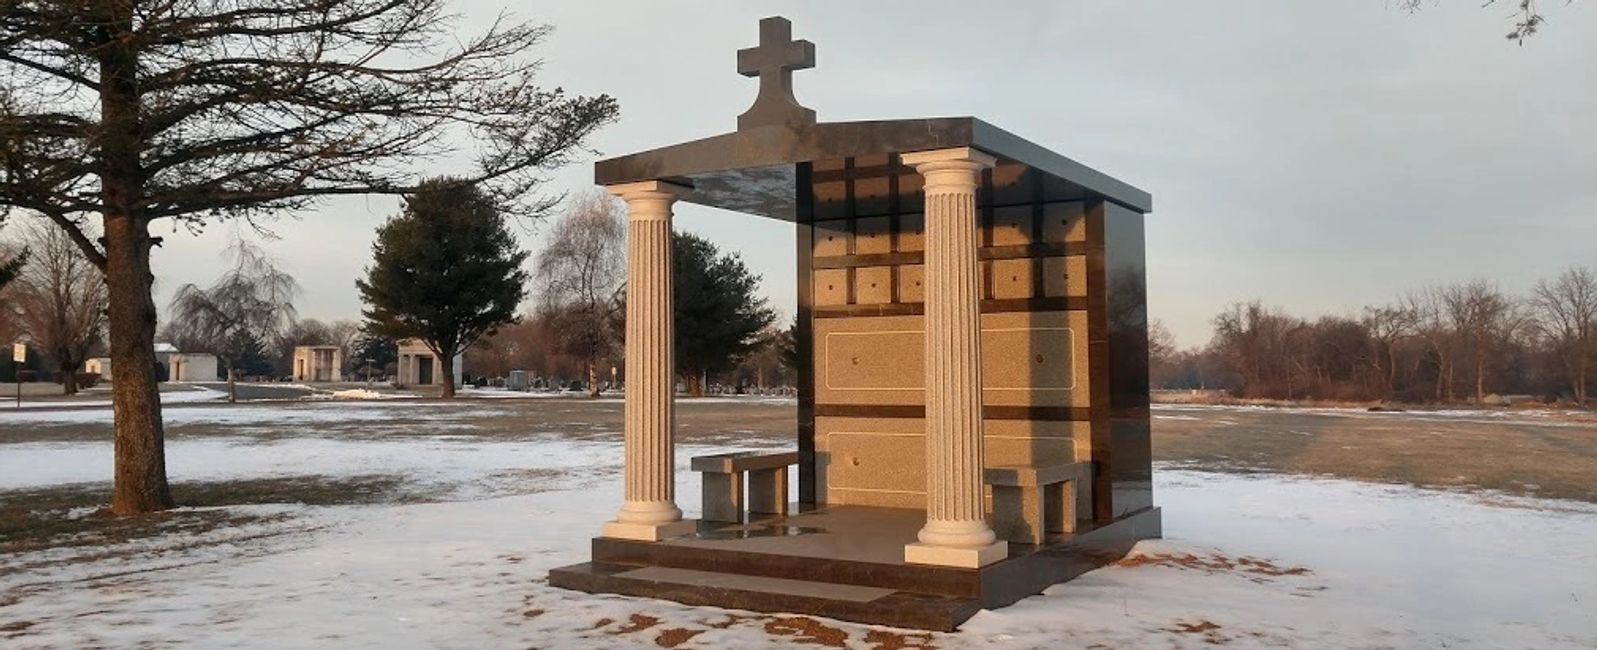 Larger garden crypt mausoleum for 14 people.